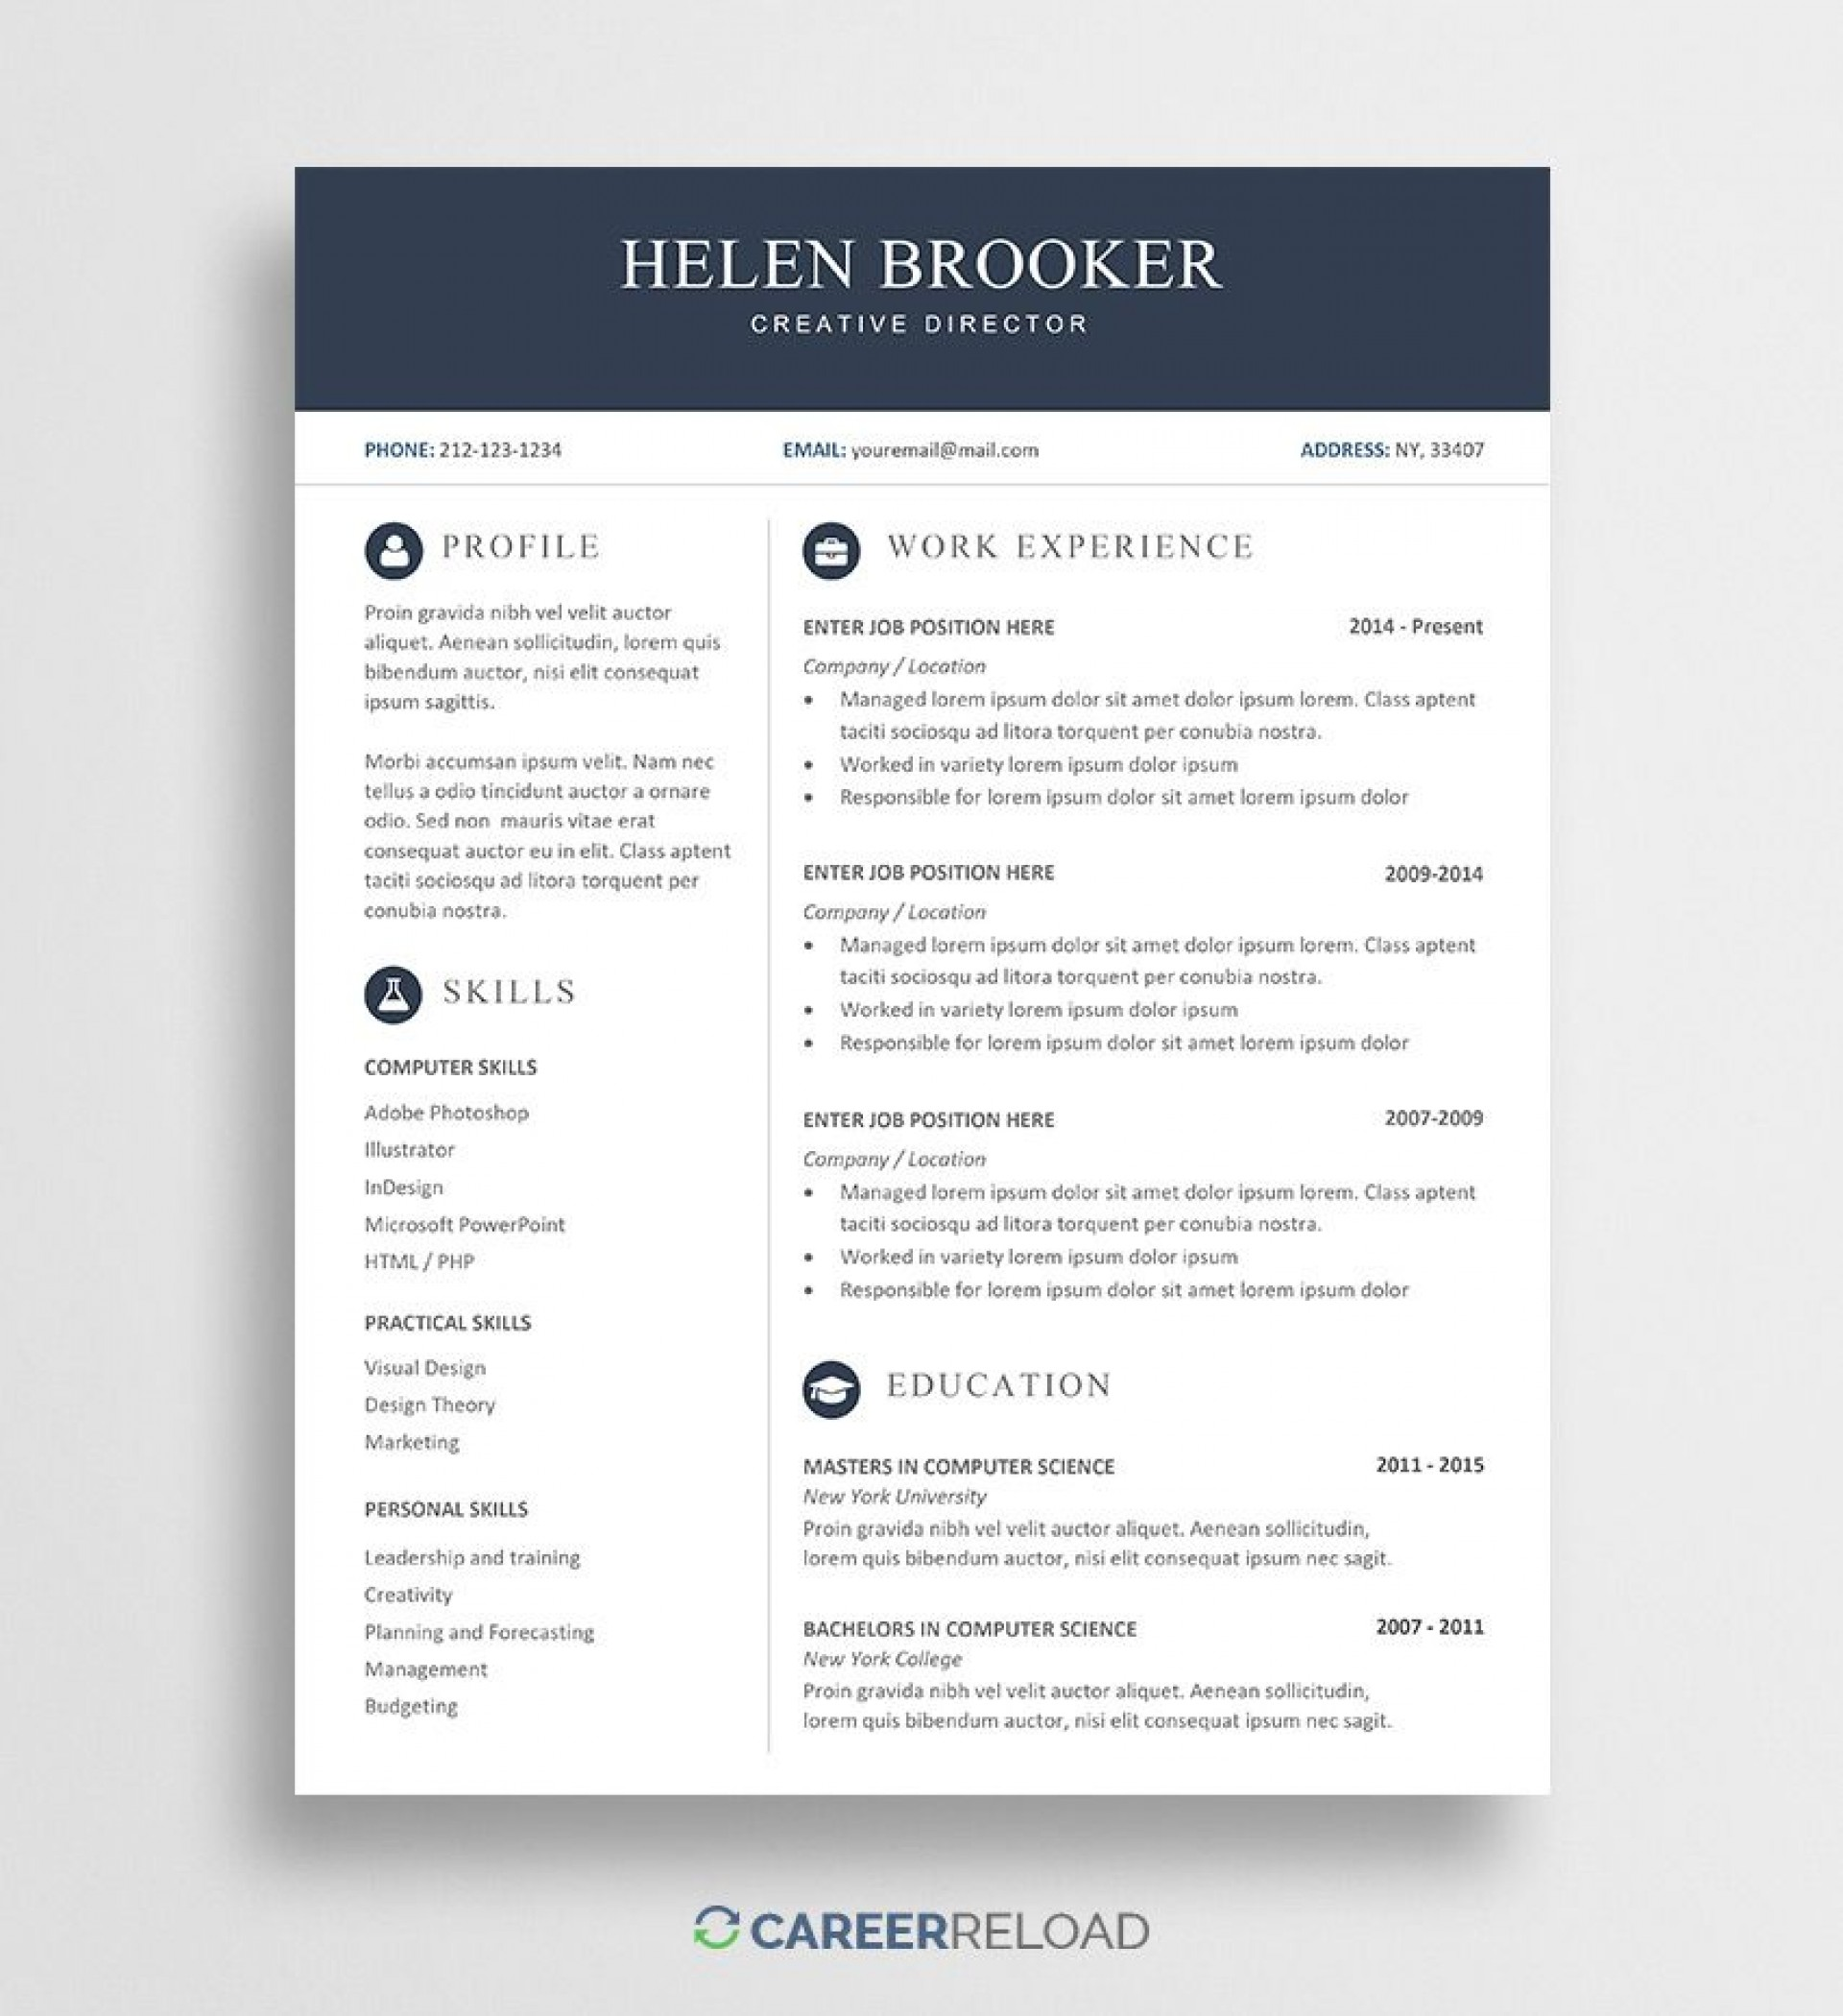 004 Remarkable Resume Template Word Download Highest Clarity  For Fresher In Format Free 20201920